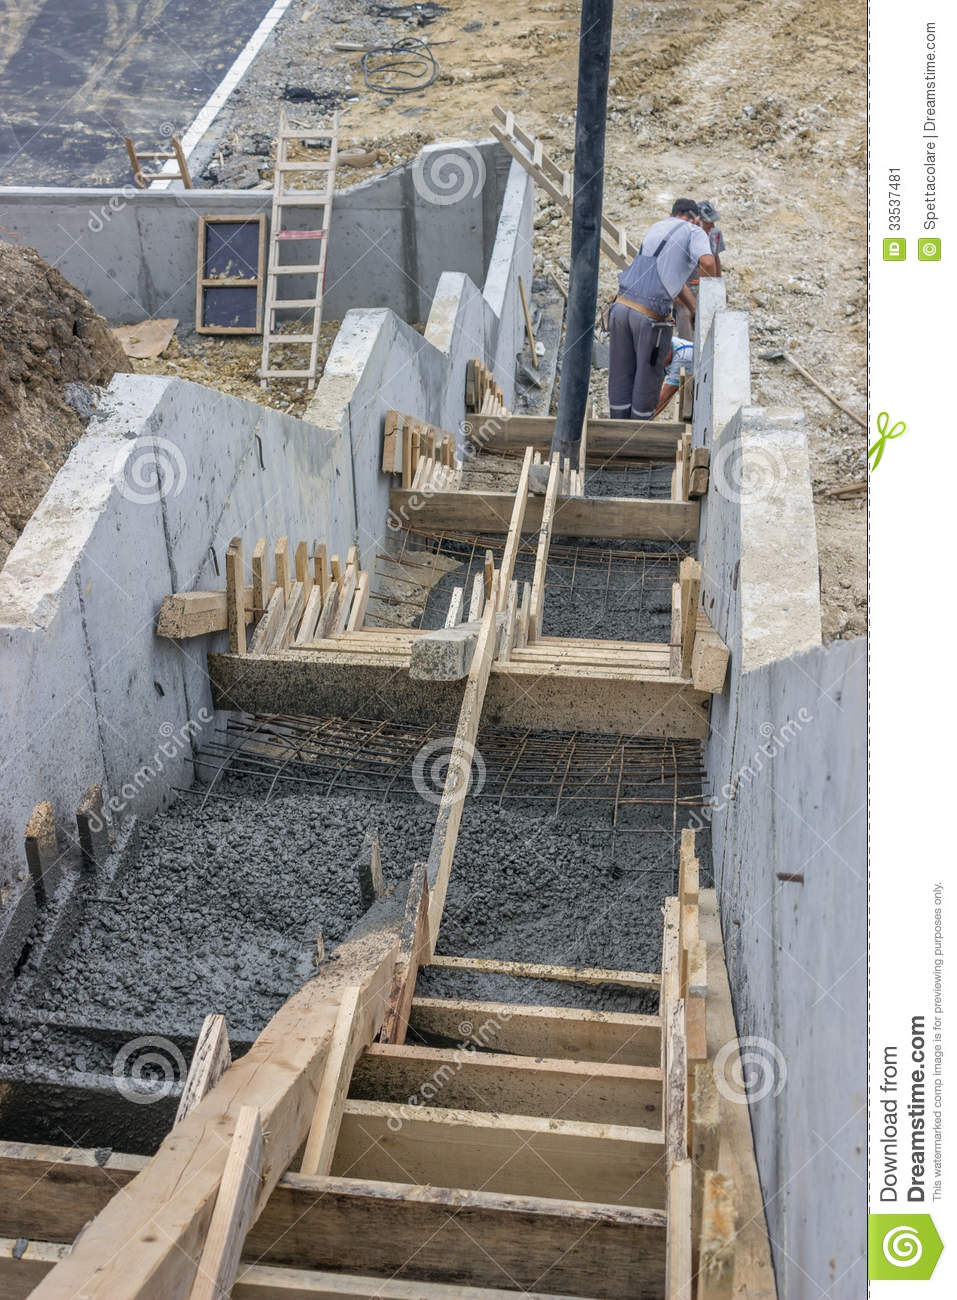 Pouring Concrete Steps 5 Stock Image Image Of Discharging